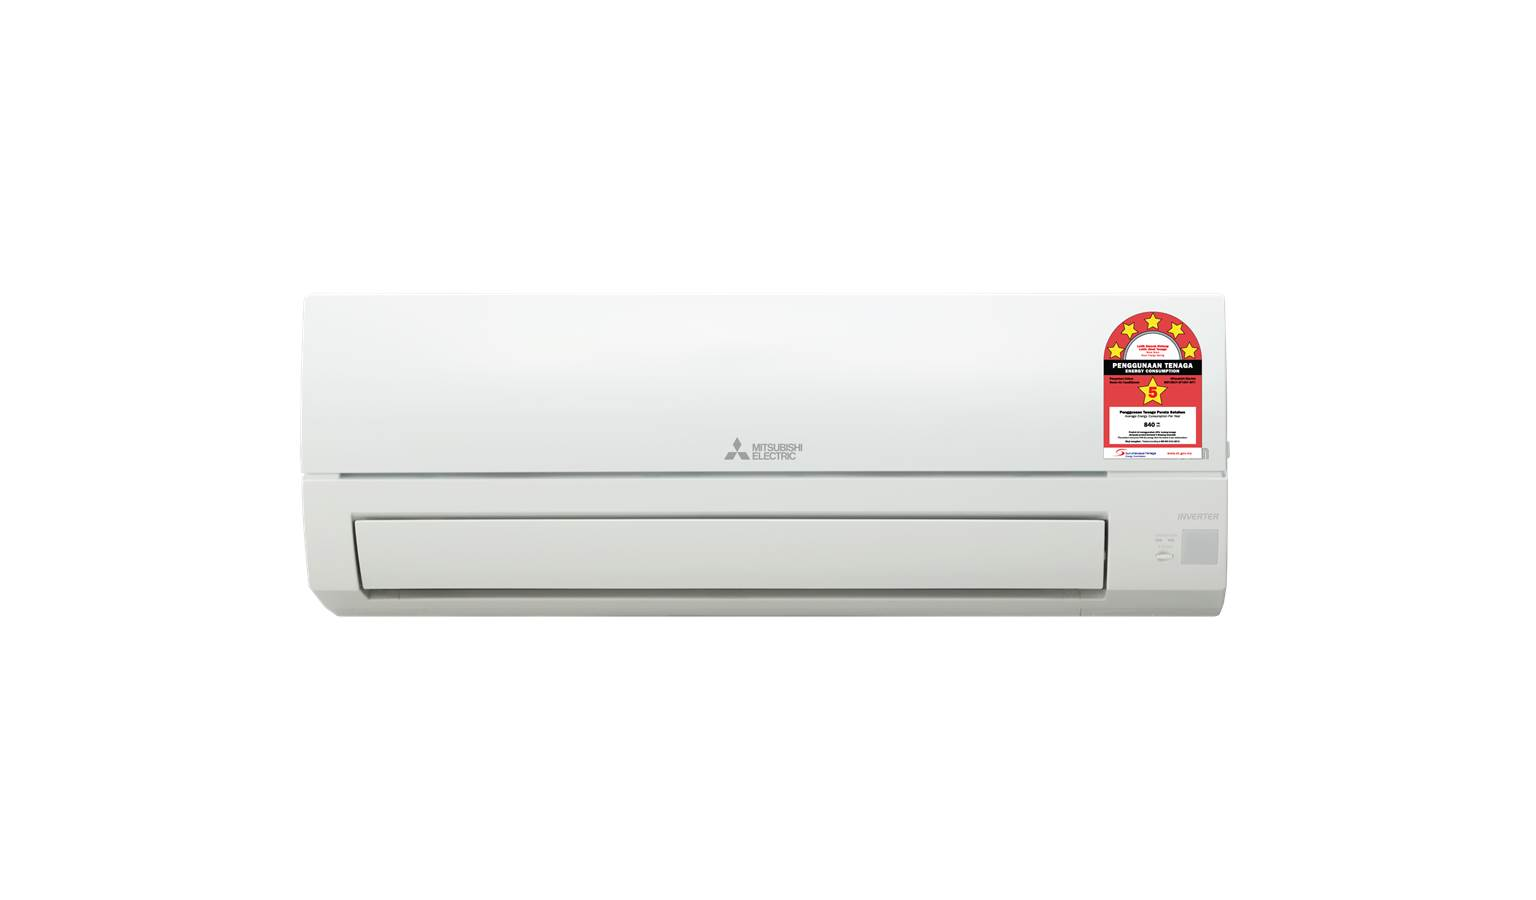 Mitsubishi MS-JR13VF 1.5HP Non-Interver Air Conditioner